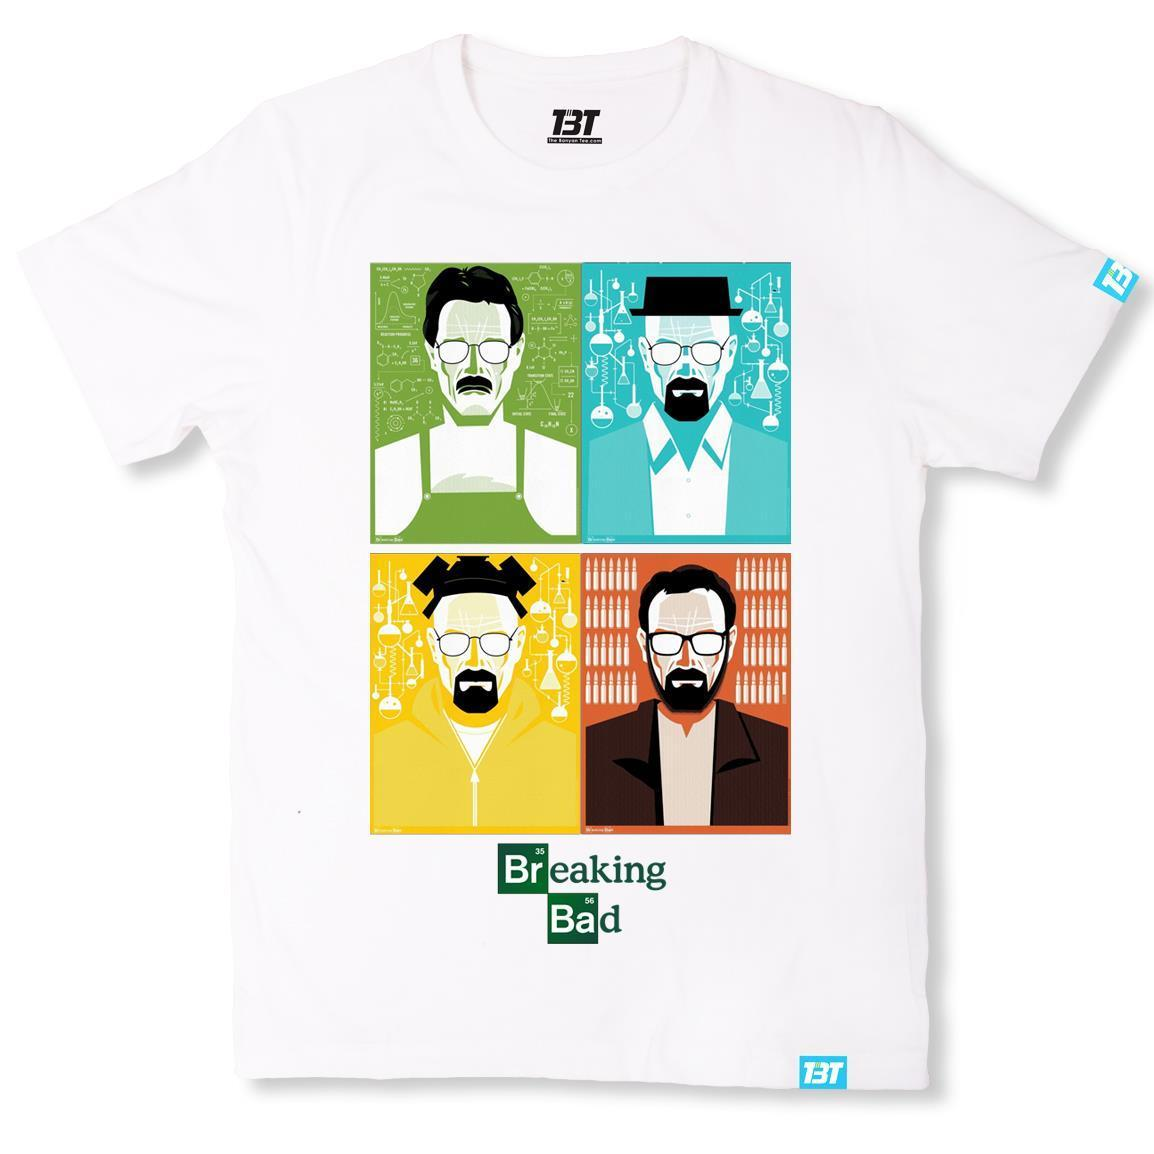 Breaking Bad t shirt (With images) | Breaking bad tshirt